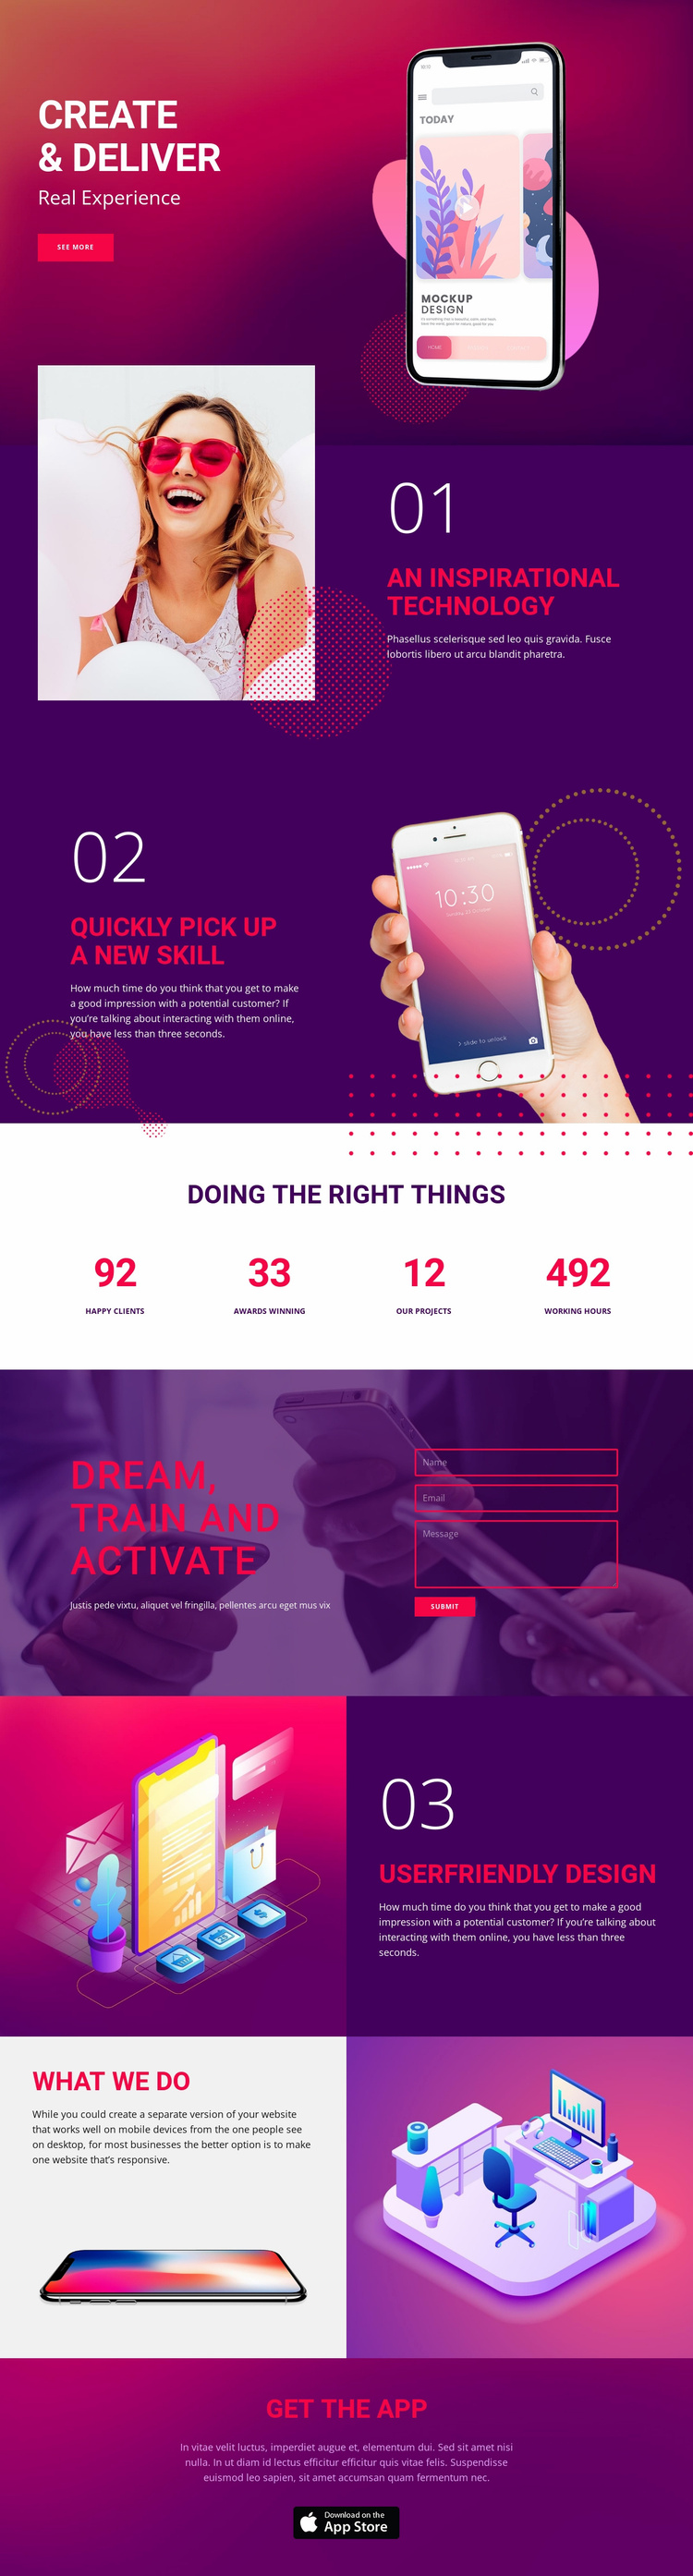 Delivery technology Landing Page